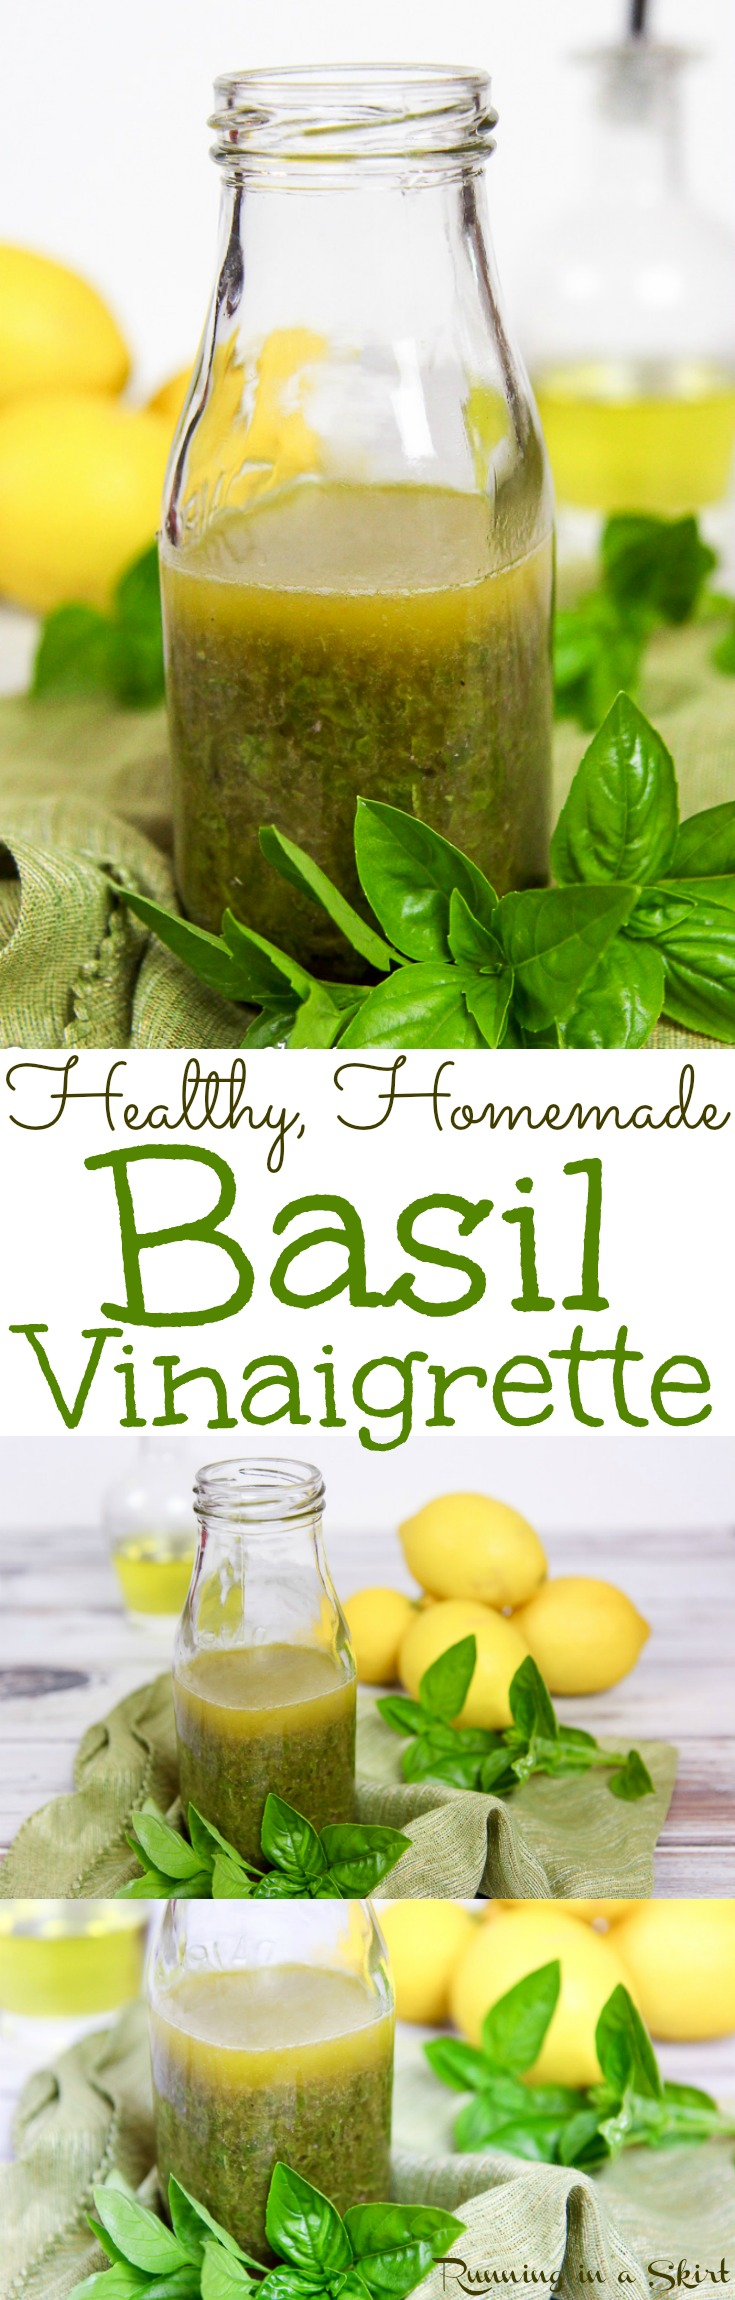 Healthy Fresh Lemon Basil Salad Dressing recipe. Homemade with only 5 ingredients! This simple vinaigrette recipe will be your go-to for salads, lunches, dinners or bowls with veggies like buddha bowls. Uses olive oils and red wines vinegar. Vegetarian, Vegan, Gluten Free/ Running in a Skirt via @juliewunder